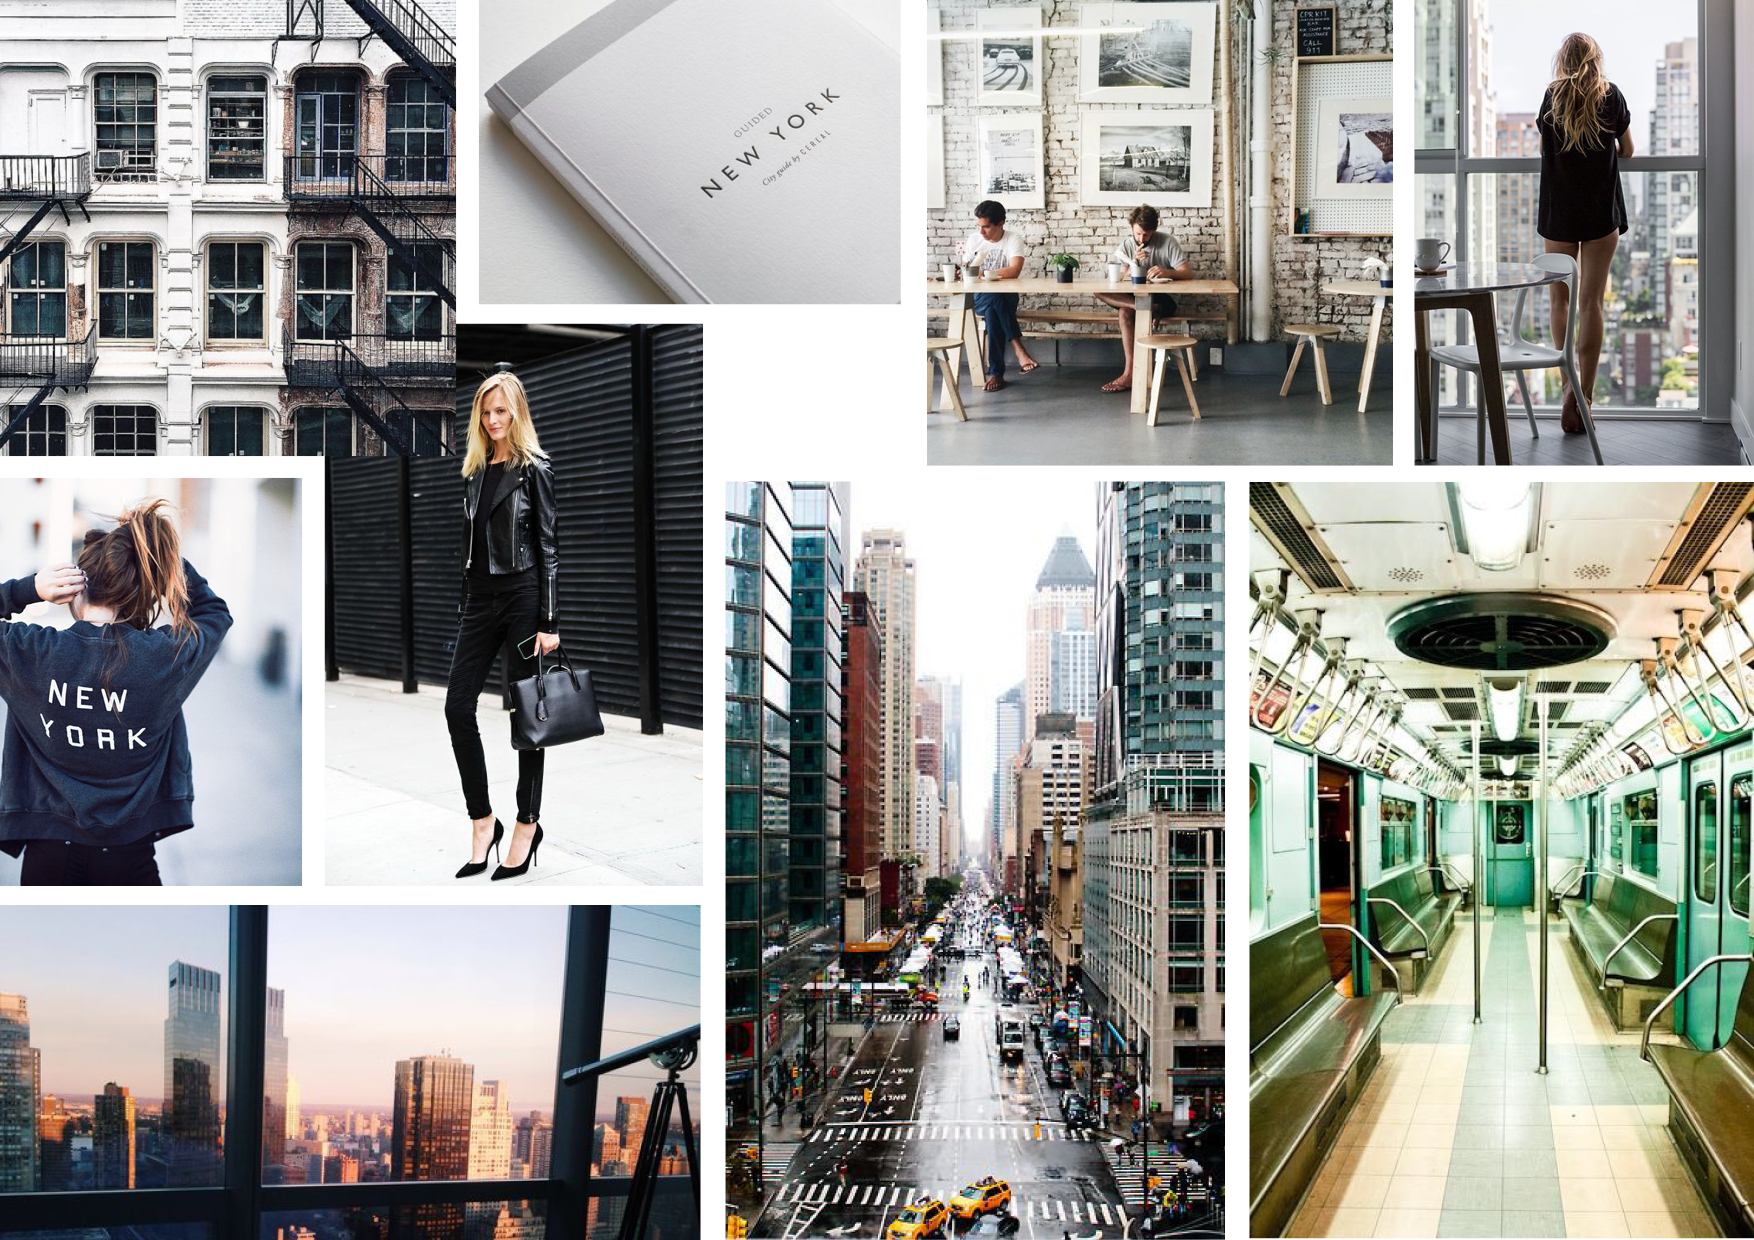 NYC MONTAGE